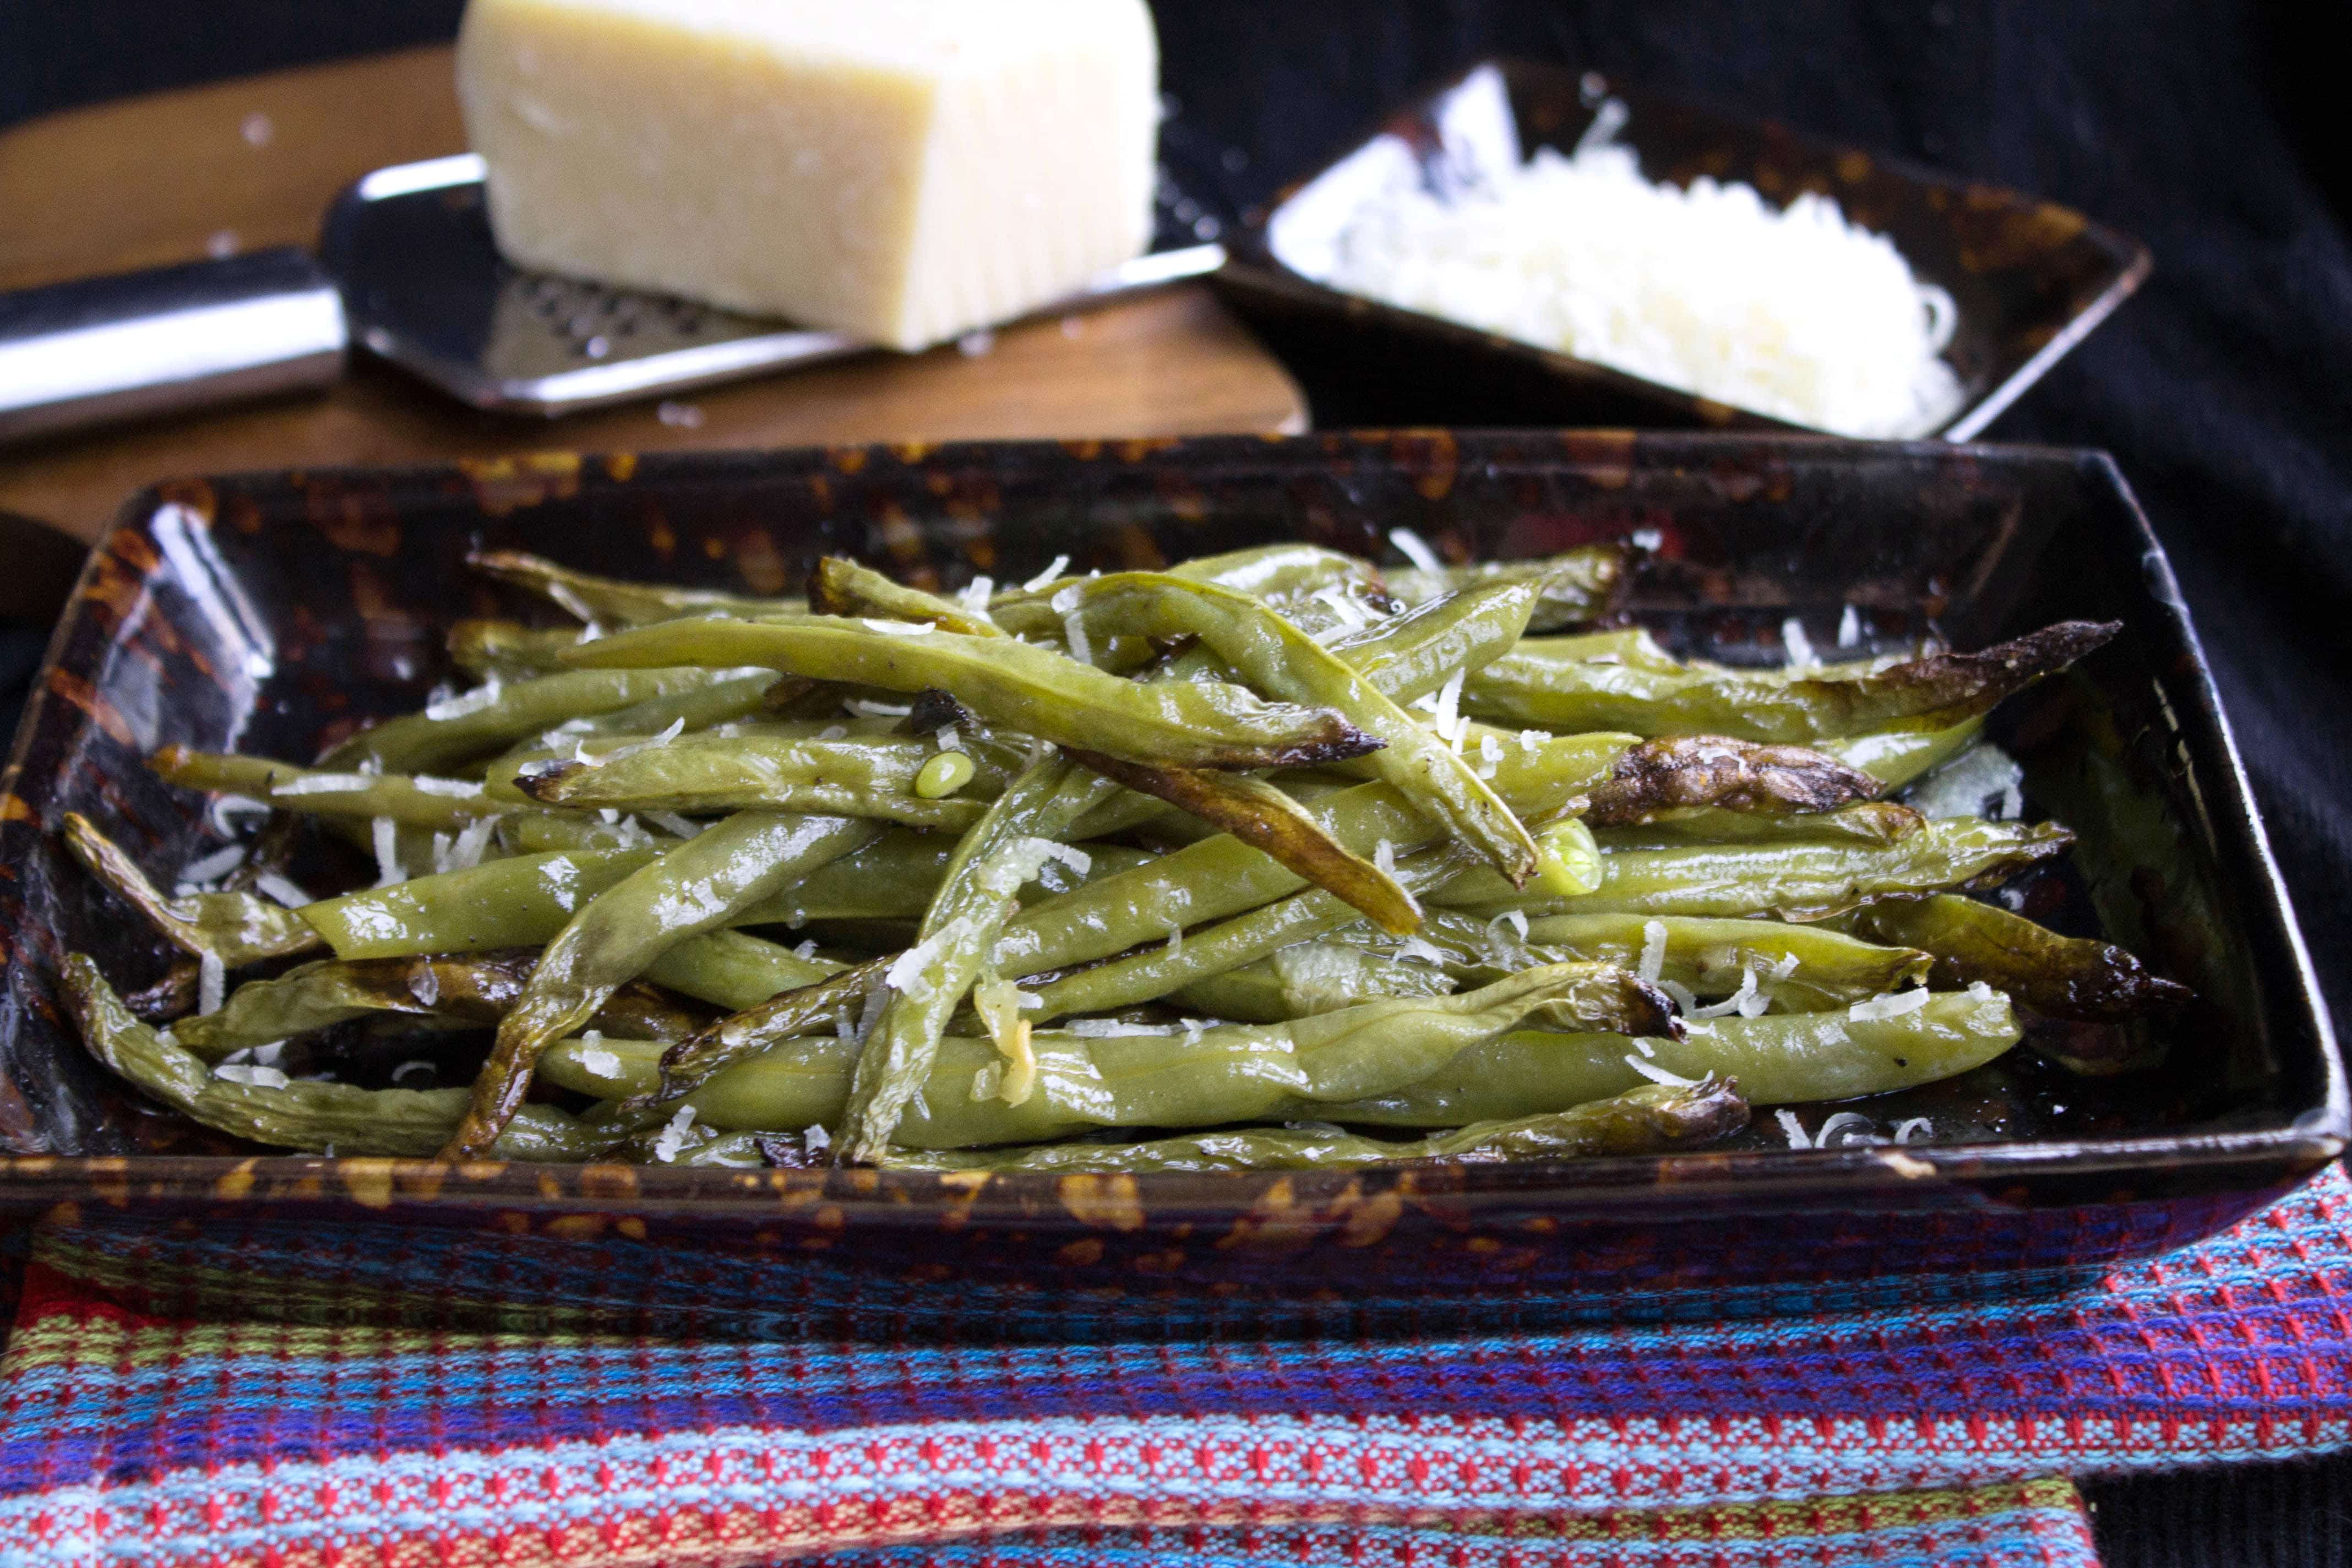 Garlic Roasted Green Beans - The best green beans ever! This simple, rustic one pot recipe from Erren's Kitchen makes a side dish with a heavy hit of delicious garlic. It's great for entertaining or simple weeknight dinners.